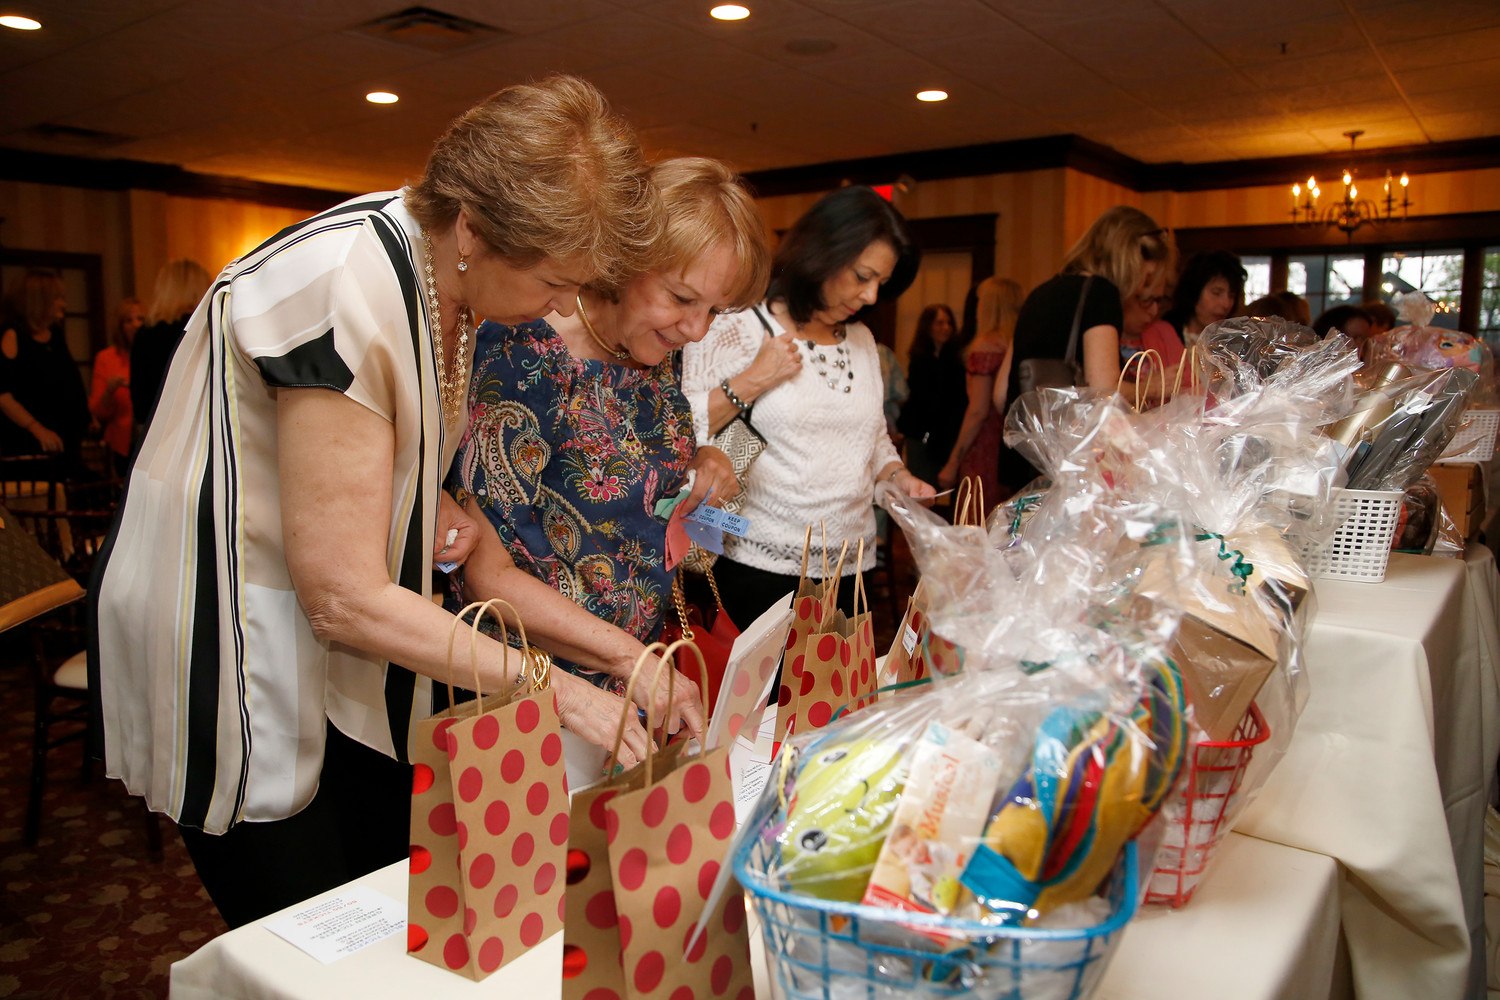 Marilyn Martin, left, Marion Locascio and Janet Schoenemann browsed through baskets to check out the raffle prizes.